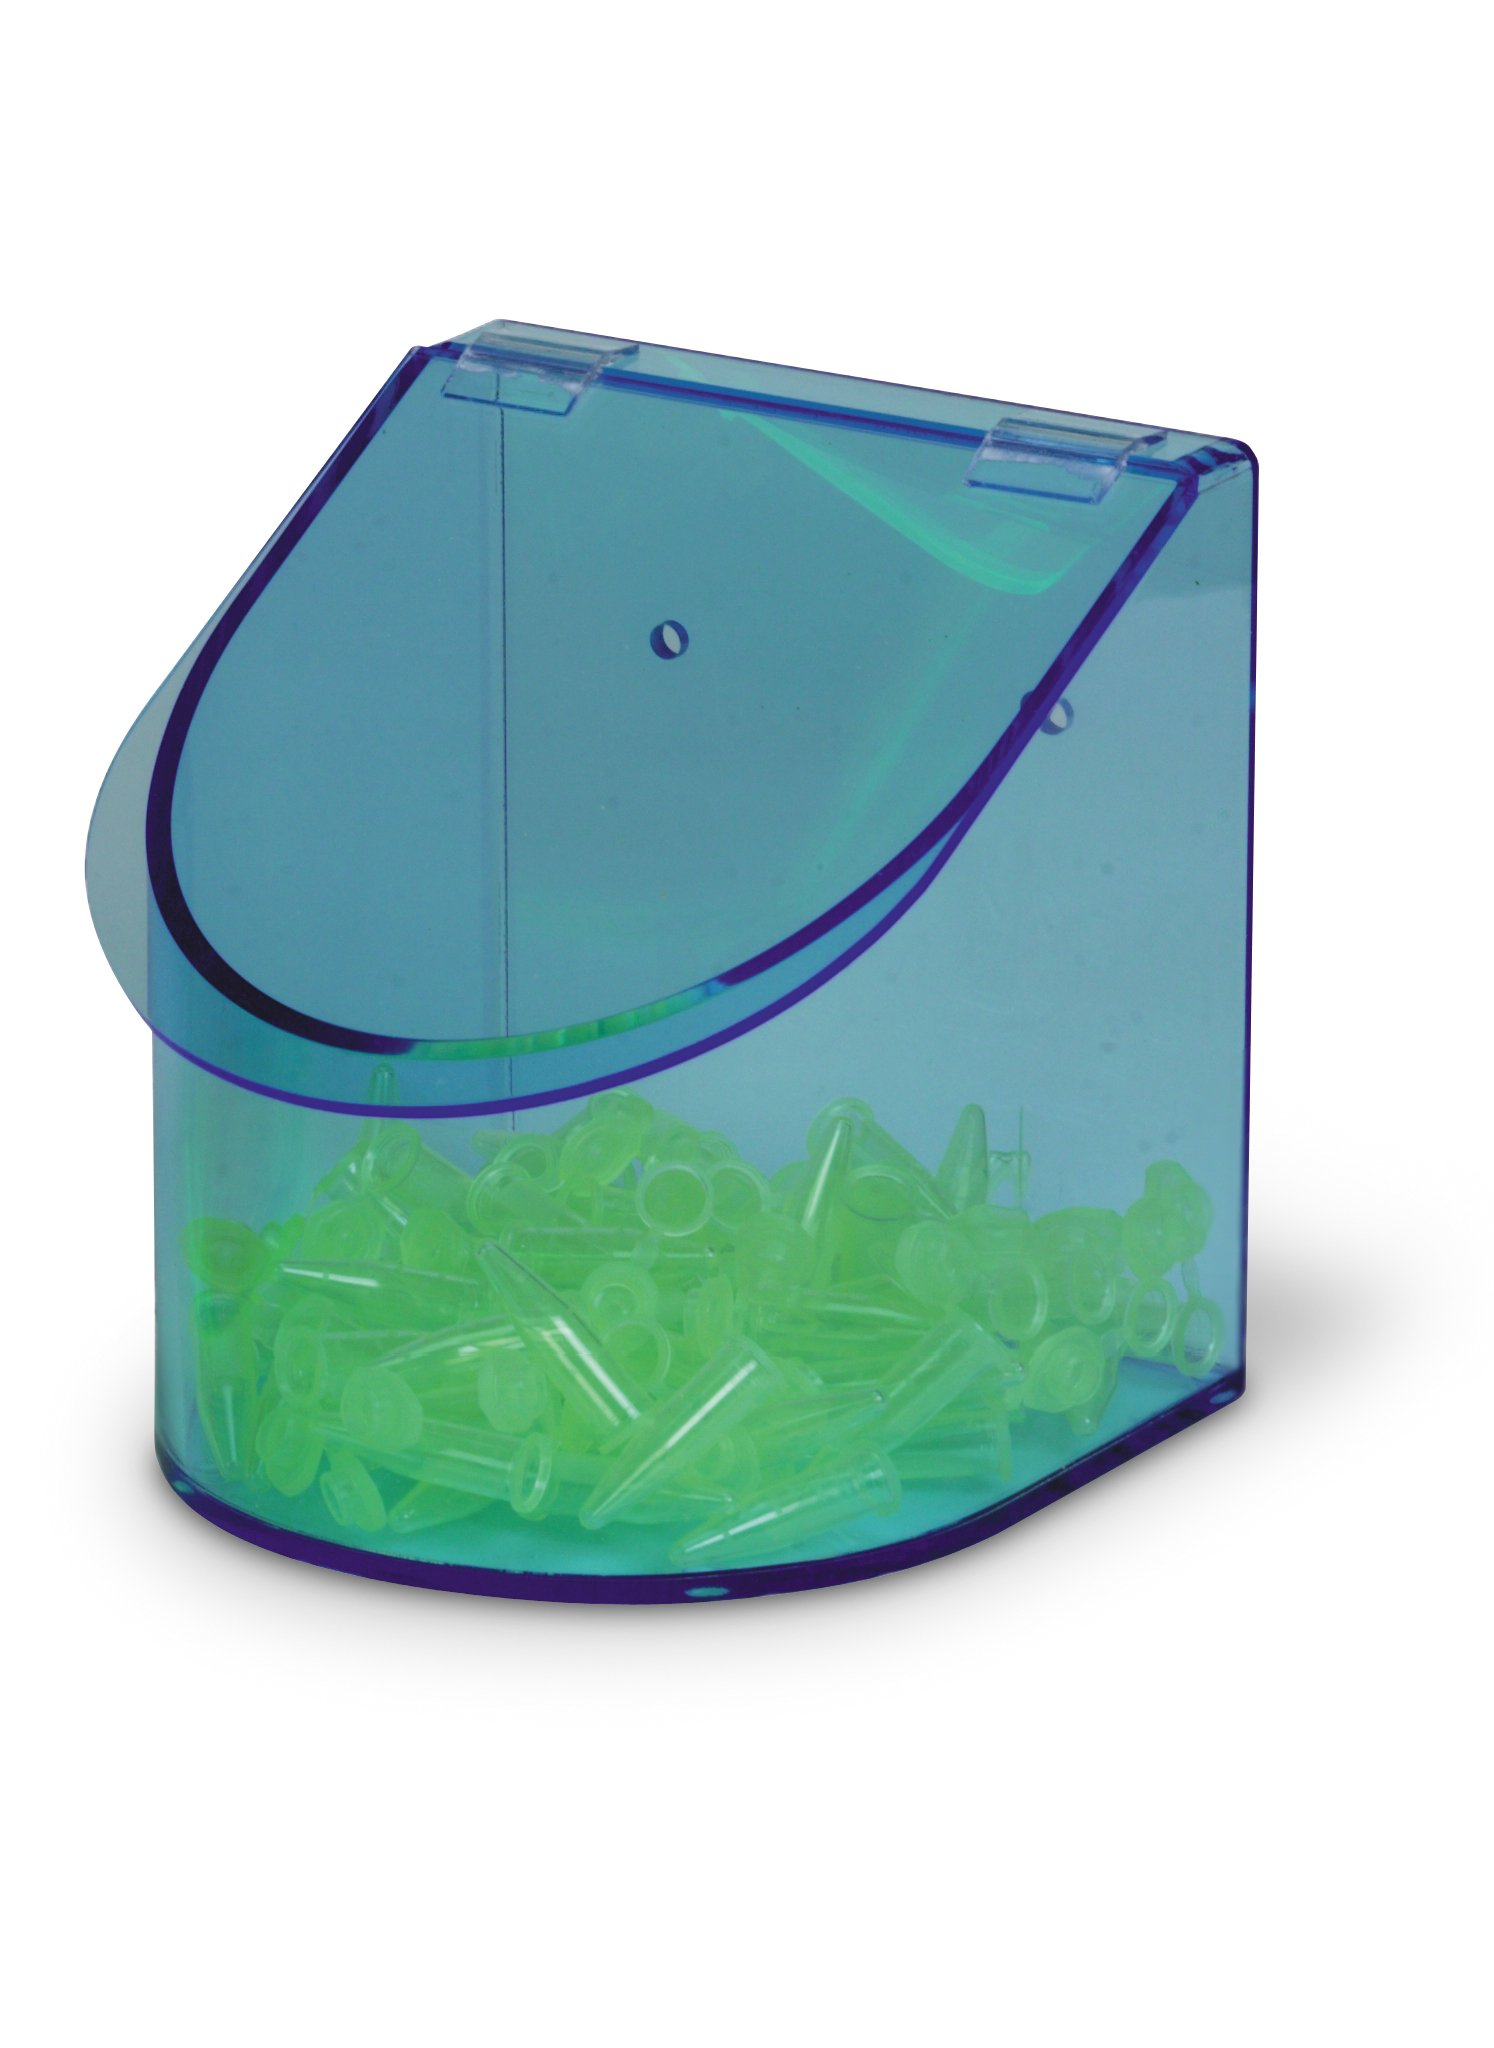 Heathrow Scientific HD23412 Neon Blue Acrylic Benchtop Dispensing Single Compartment Bin, 155mm Width x 155mm Height x 170mm Depth by Heathrow Scientific (Image #1)